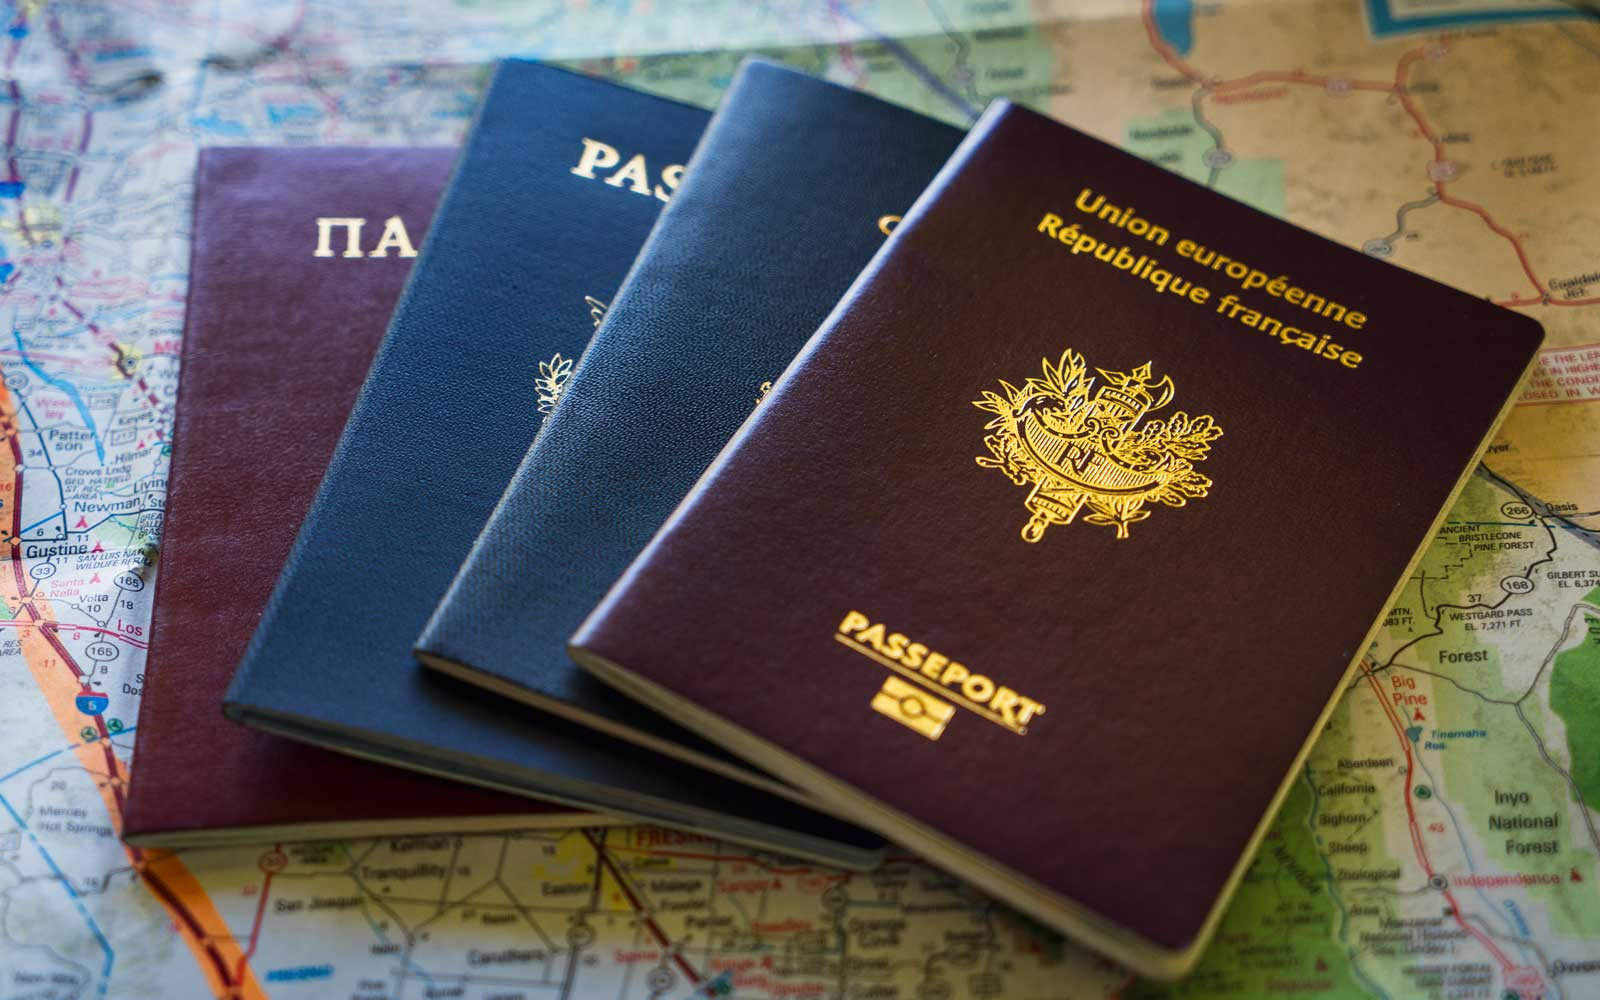 This Passport Is Now the World's Most Powerful